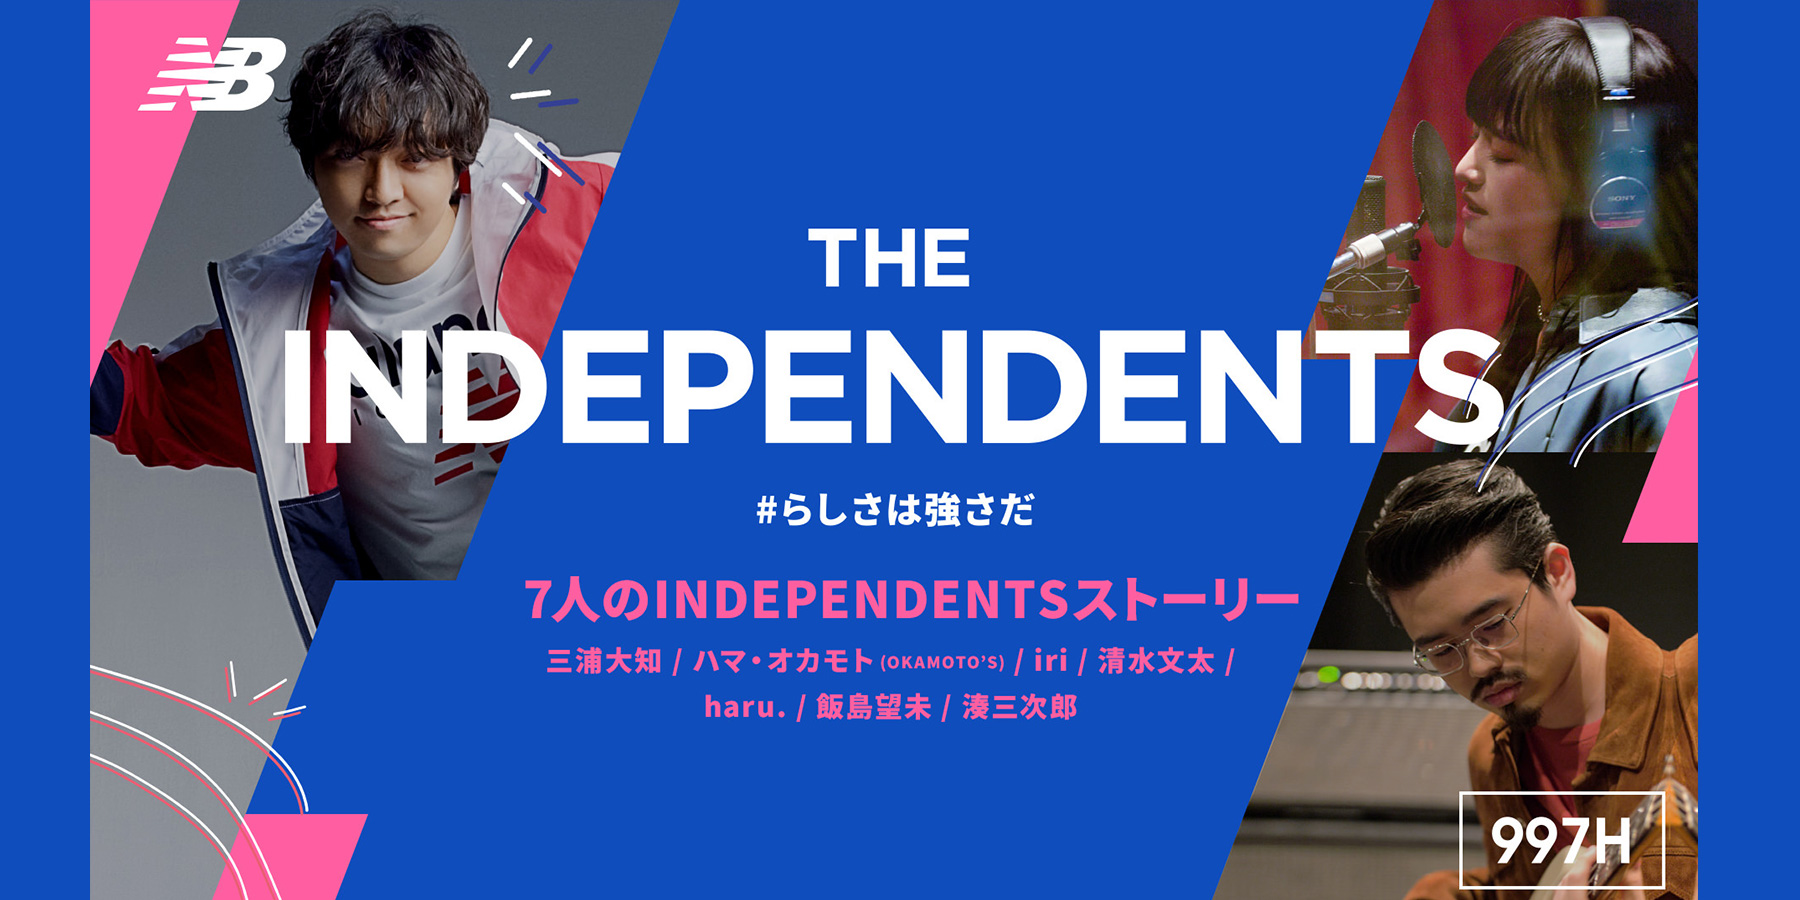 New Balance × THE INDEPENDENTS #らしさは強さだ